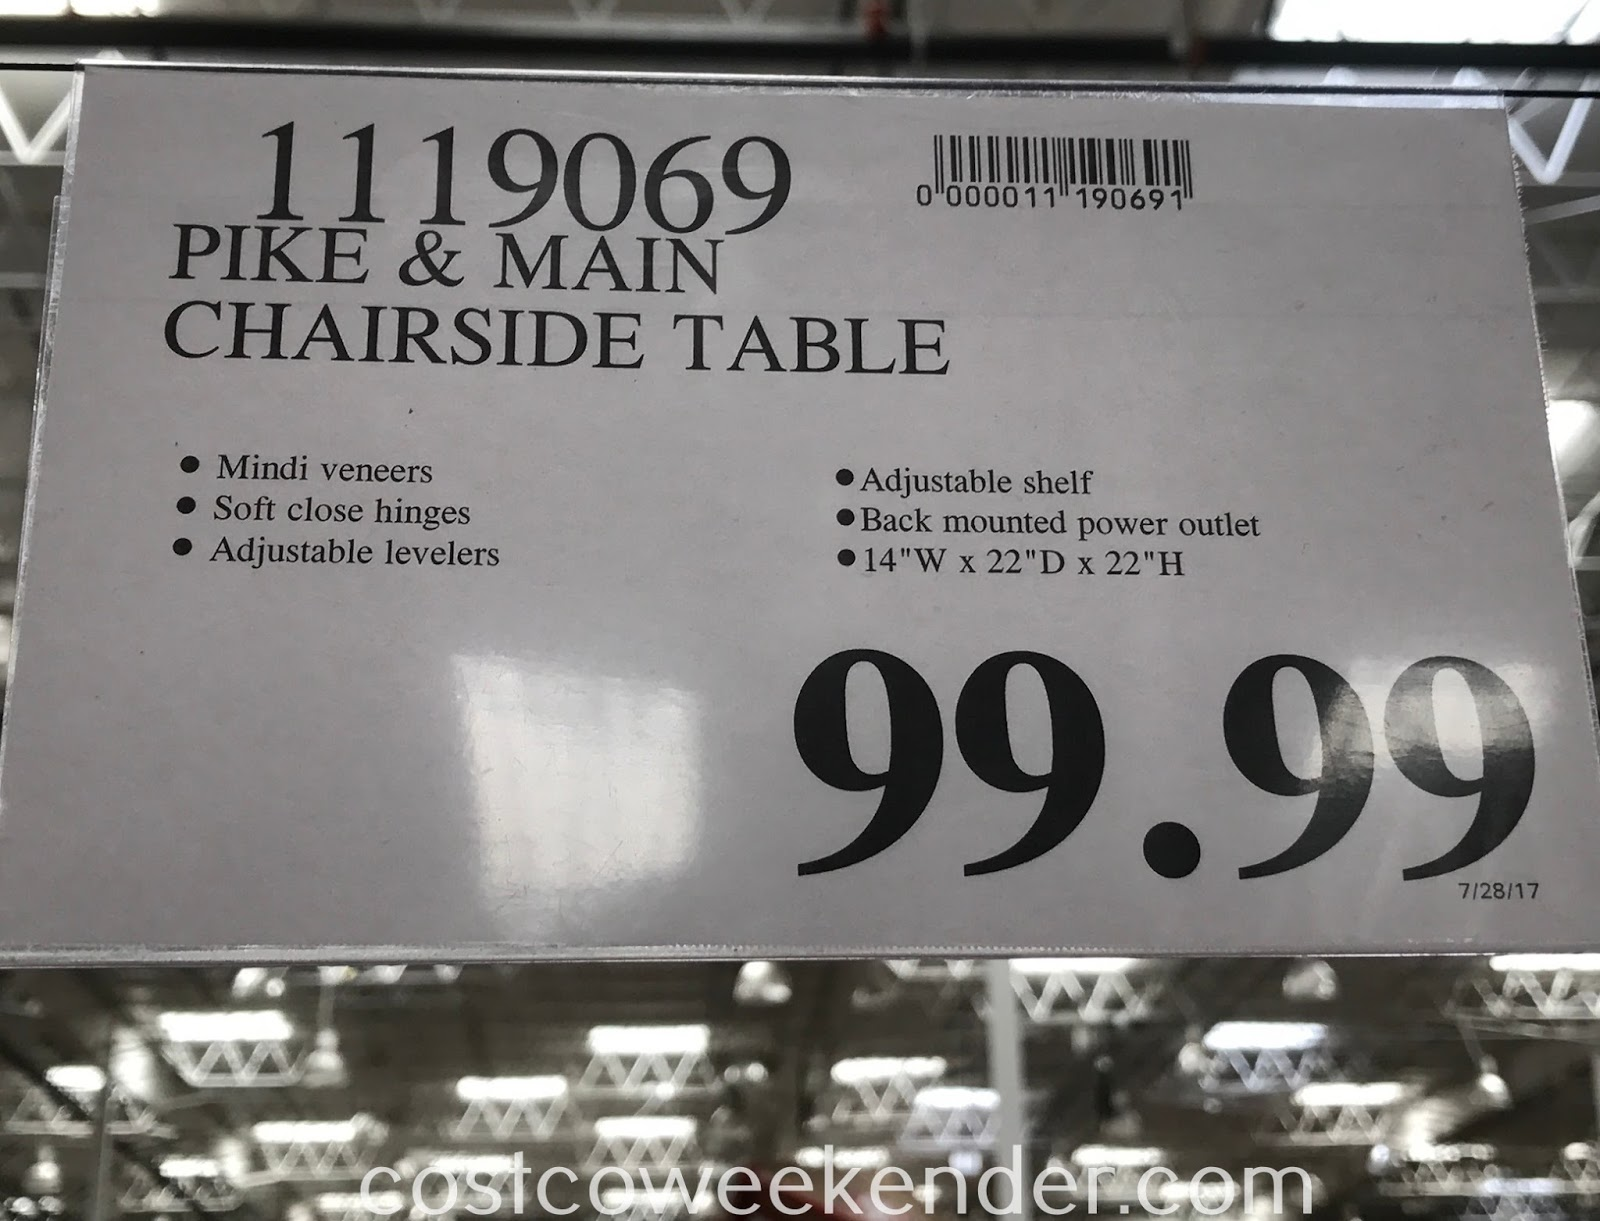 Deal for the Pike and Main Chairside Table at Costco